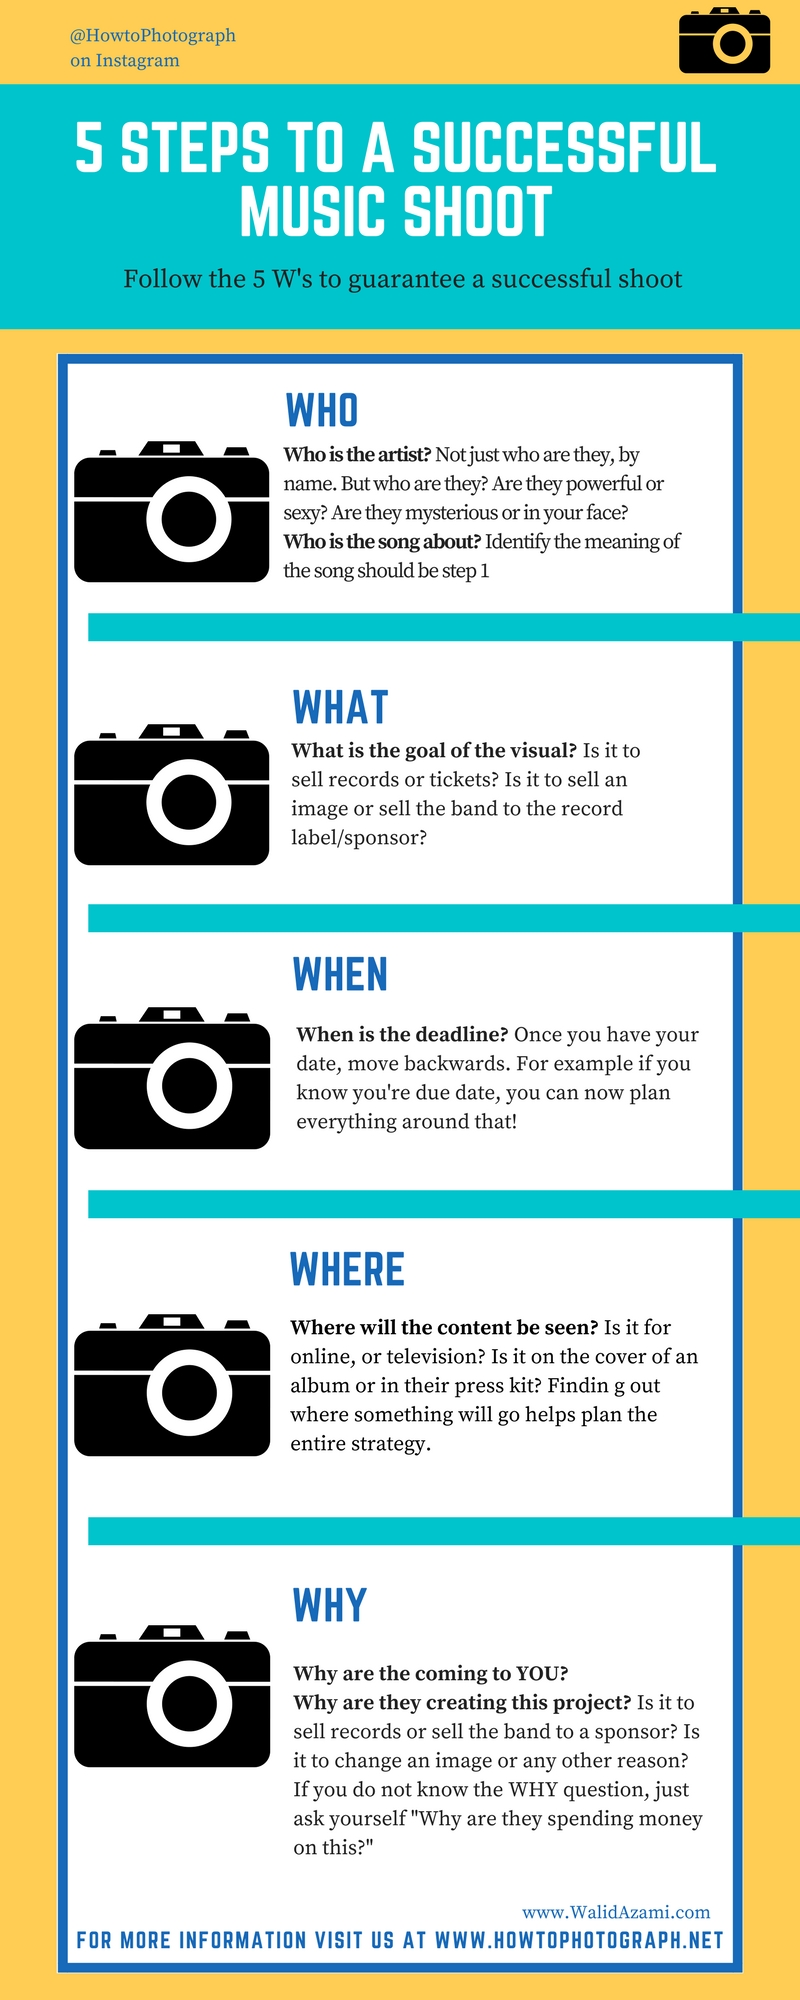 Howtophotograph on instagram